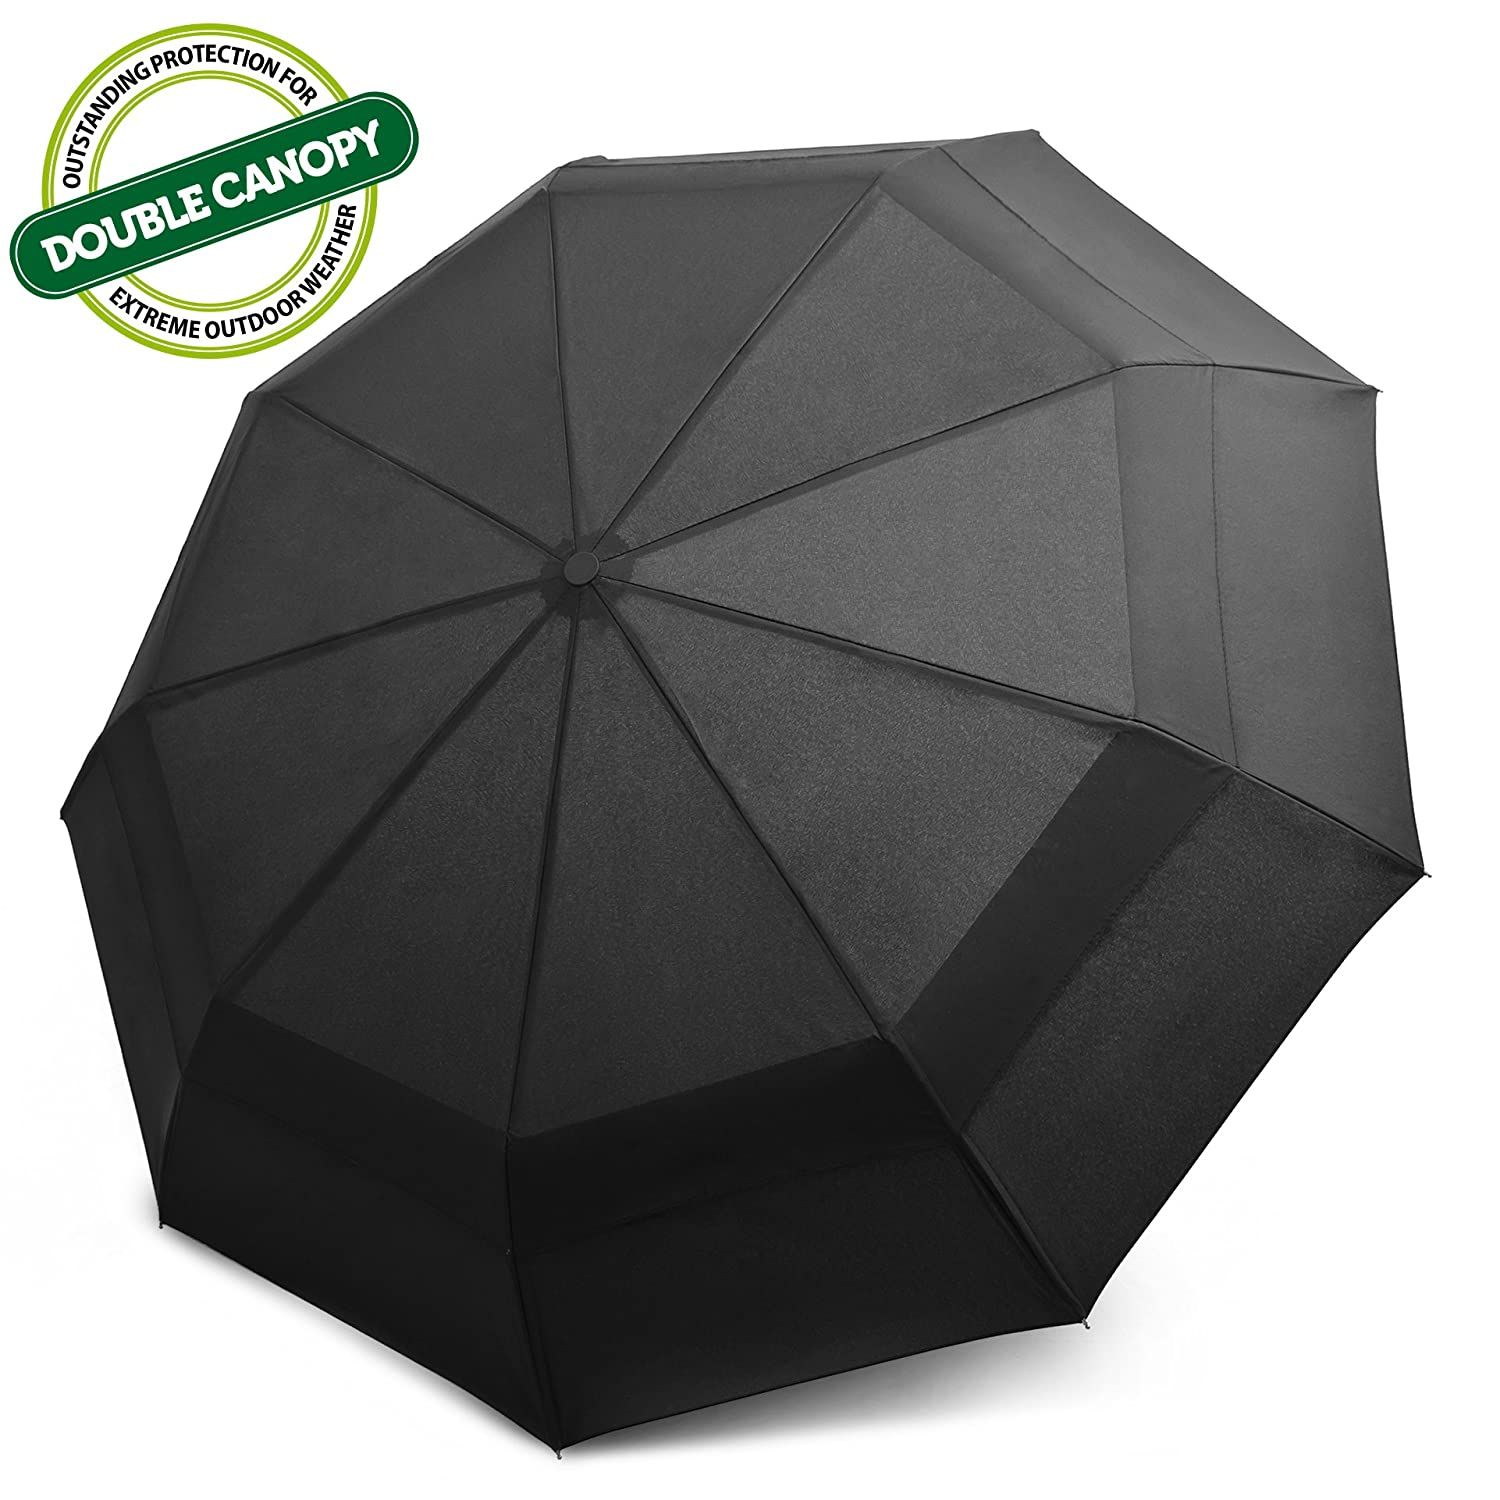 EEZ-Y Compact Travel Umbrella with Windproof Double Canopy Construction - Sturdy, Portable and Lightweight for Easy Carrying - Auto Open Close Button for One Handed Operation - Lifetime Guarantee